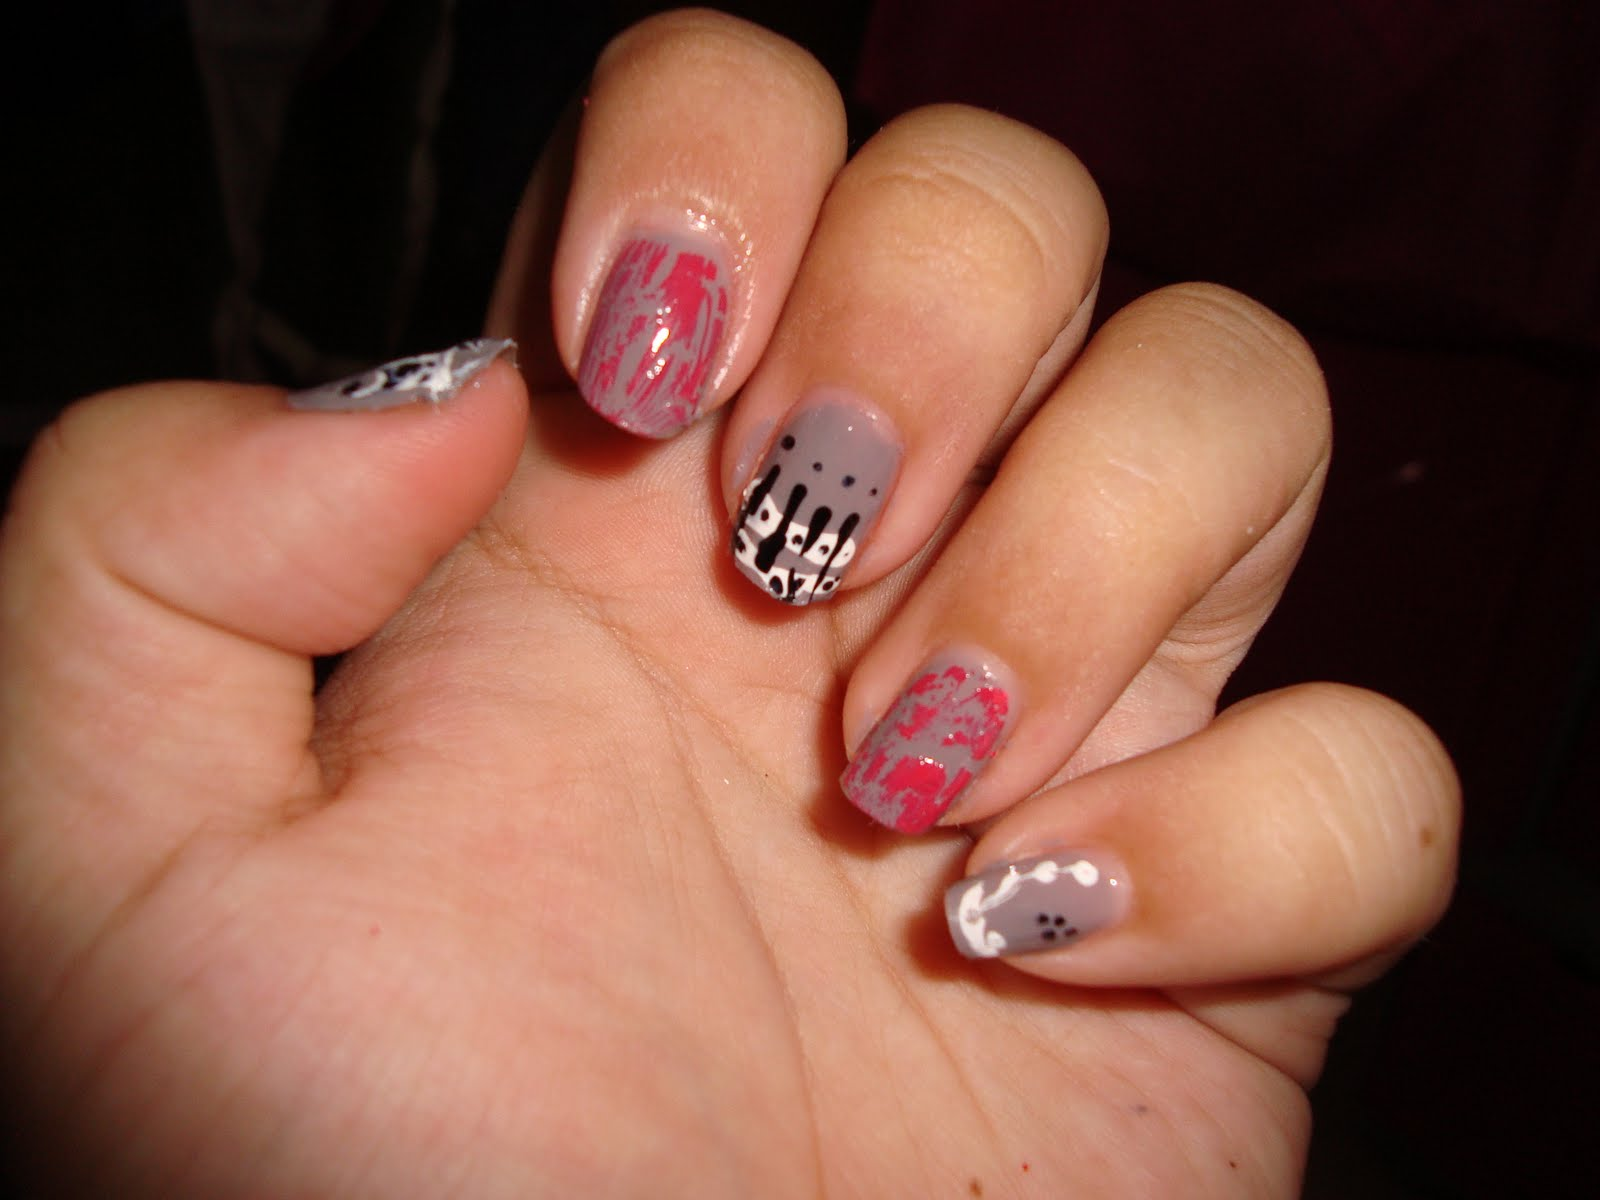 Nails | Black, White and Gray All-over